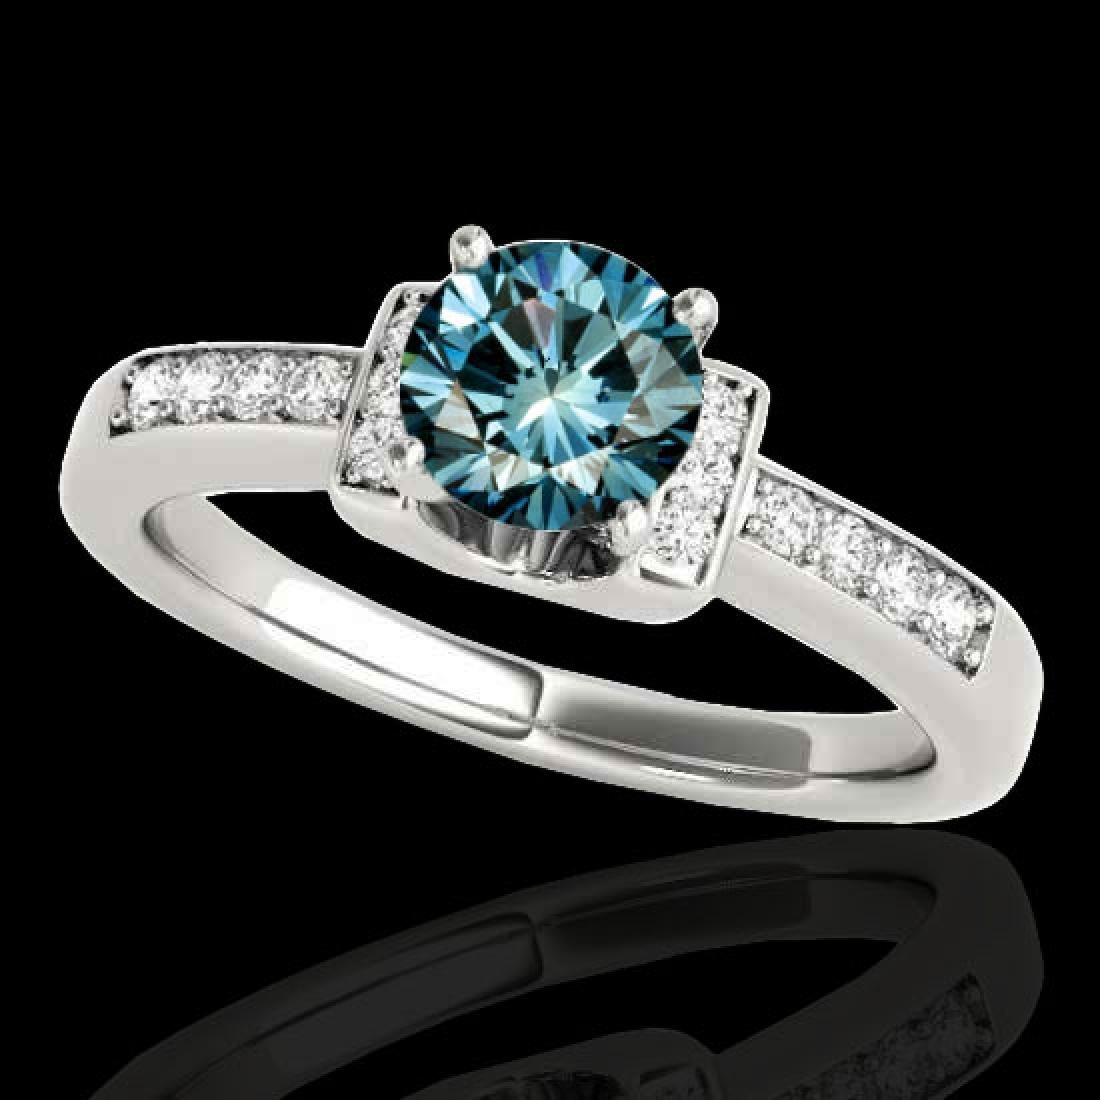 1.11 CTW SI Certified Fancy Blue Diamond Solitaire Ring